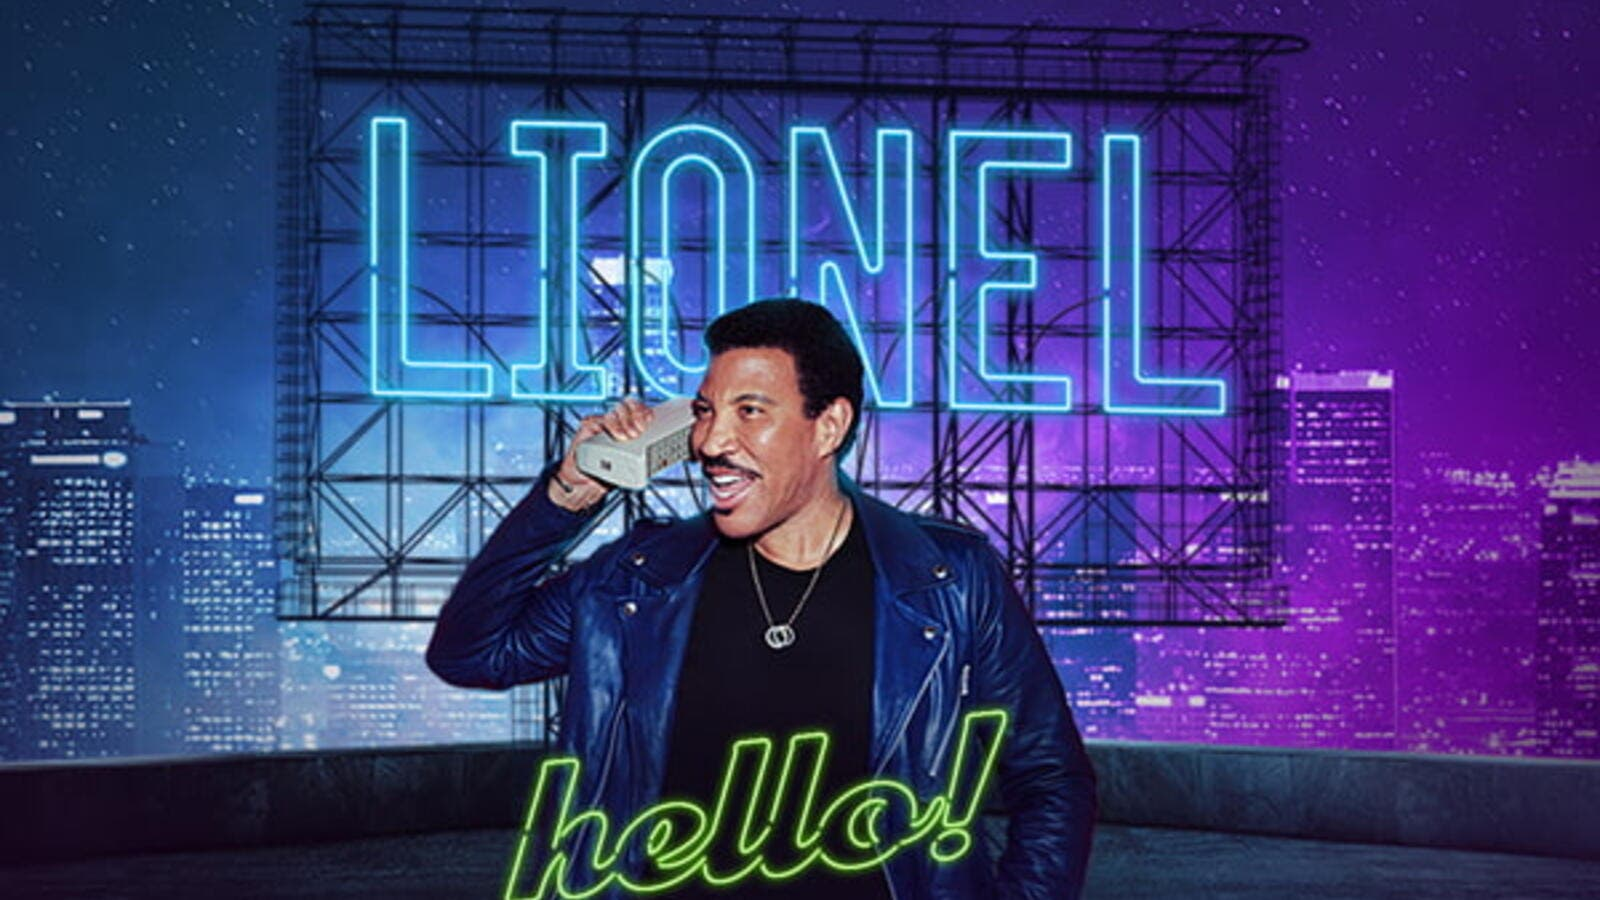 Lionel Richie at Dubai Jazz Festival